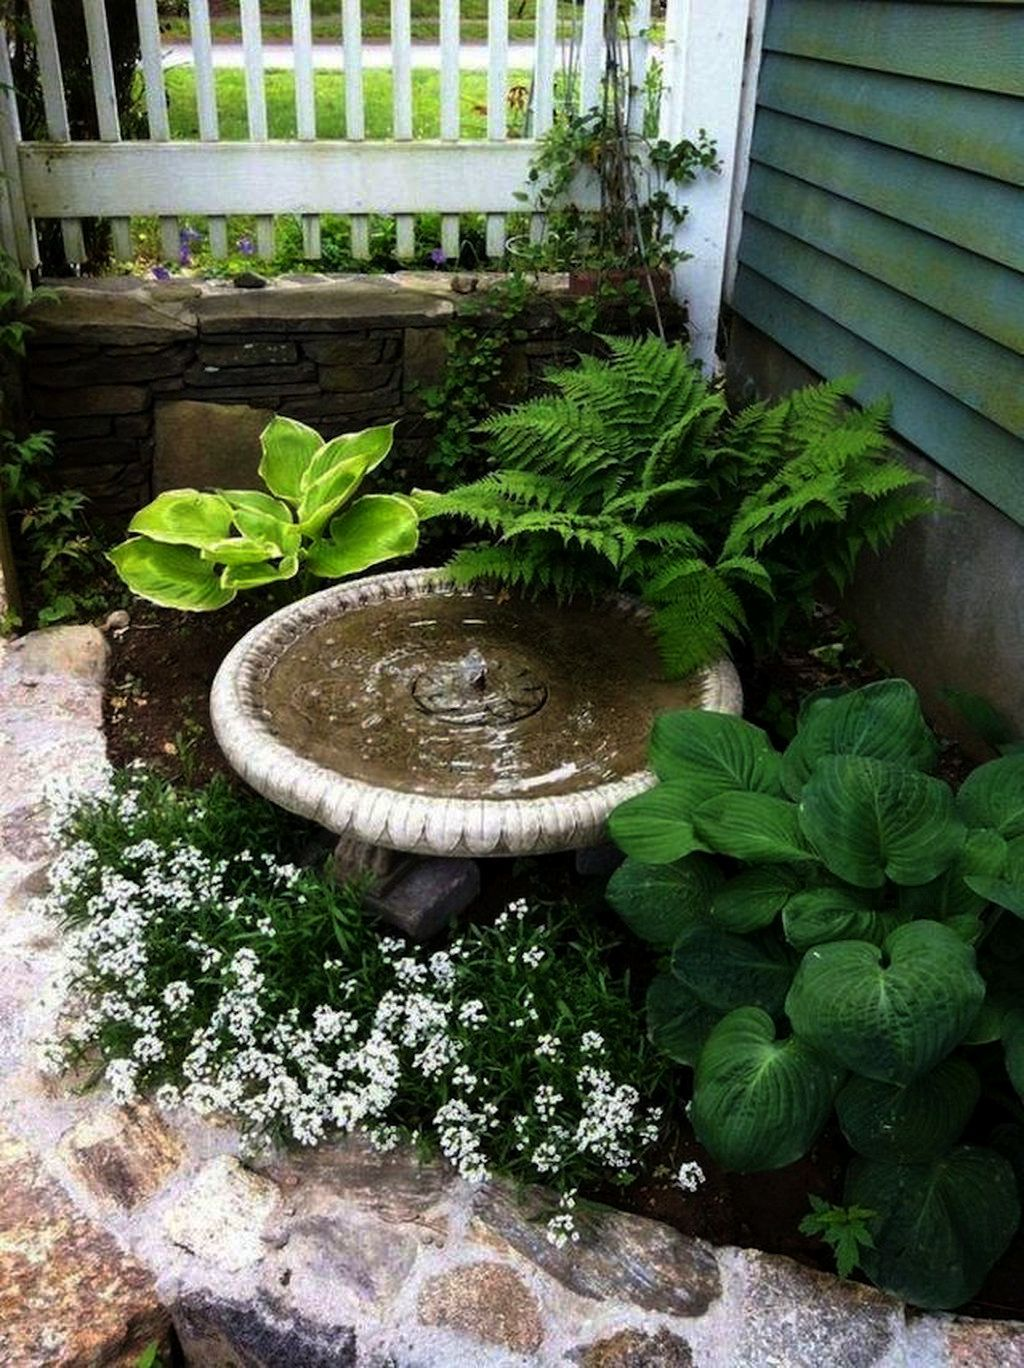 Landscape Gardening Courses Leicestershire Without Oriental Garden Landscaping Ideas Cottage Garden Small Garden Design Front Yard Landscaping